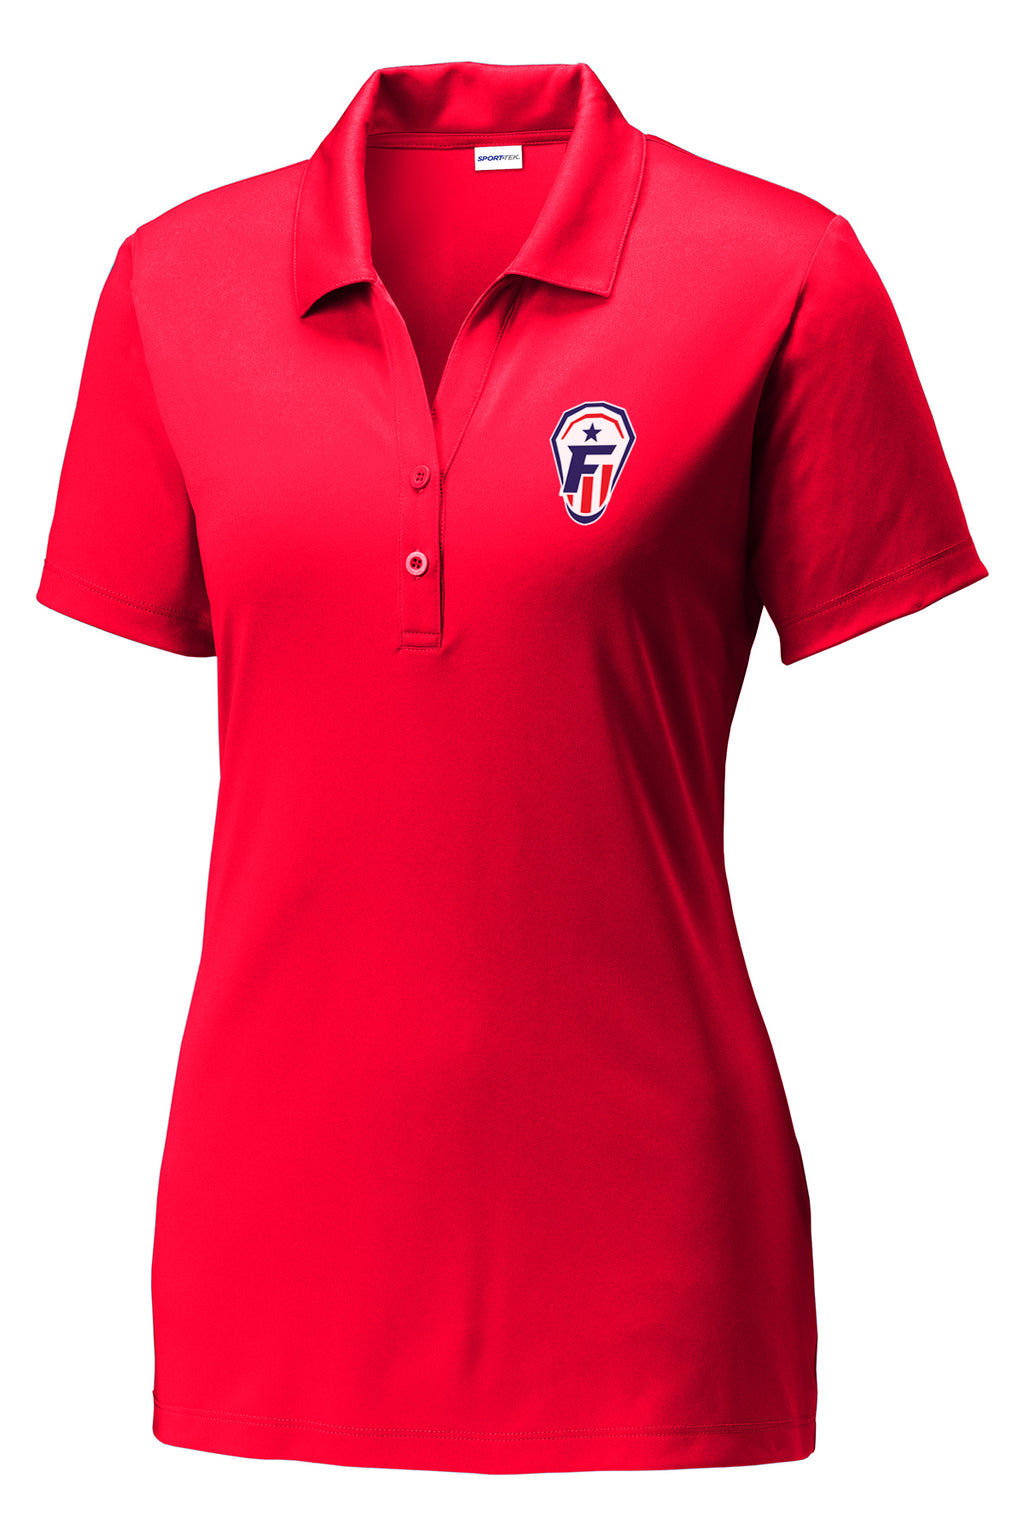 Freedom Lacrosse Women's Red Polo